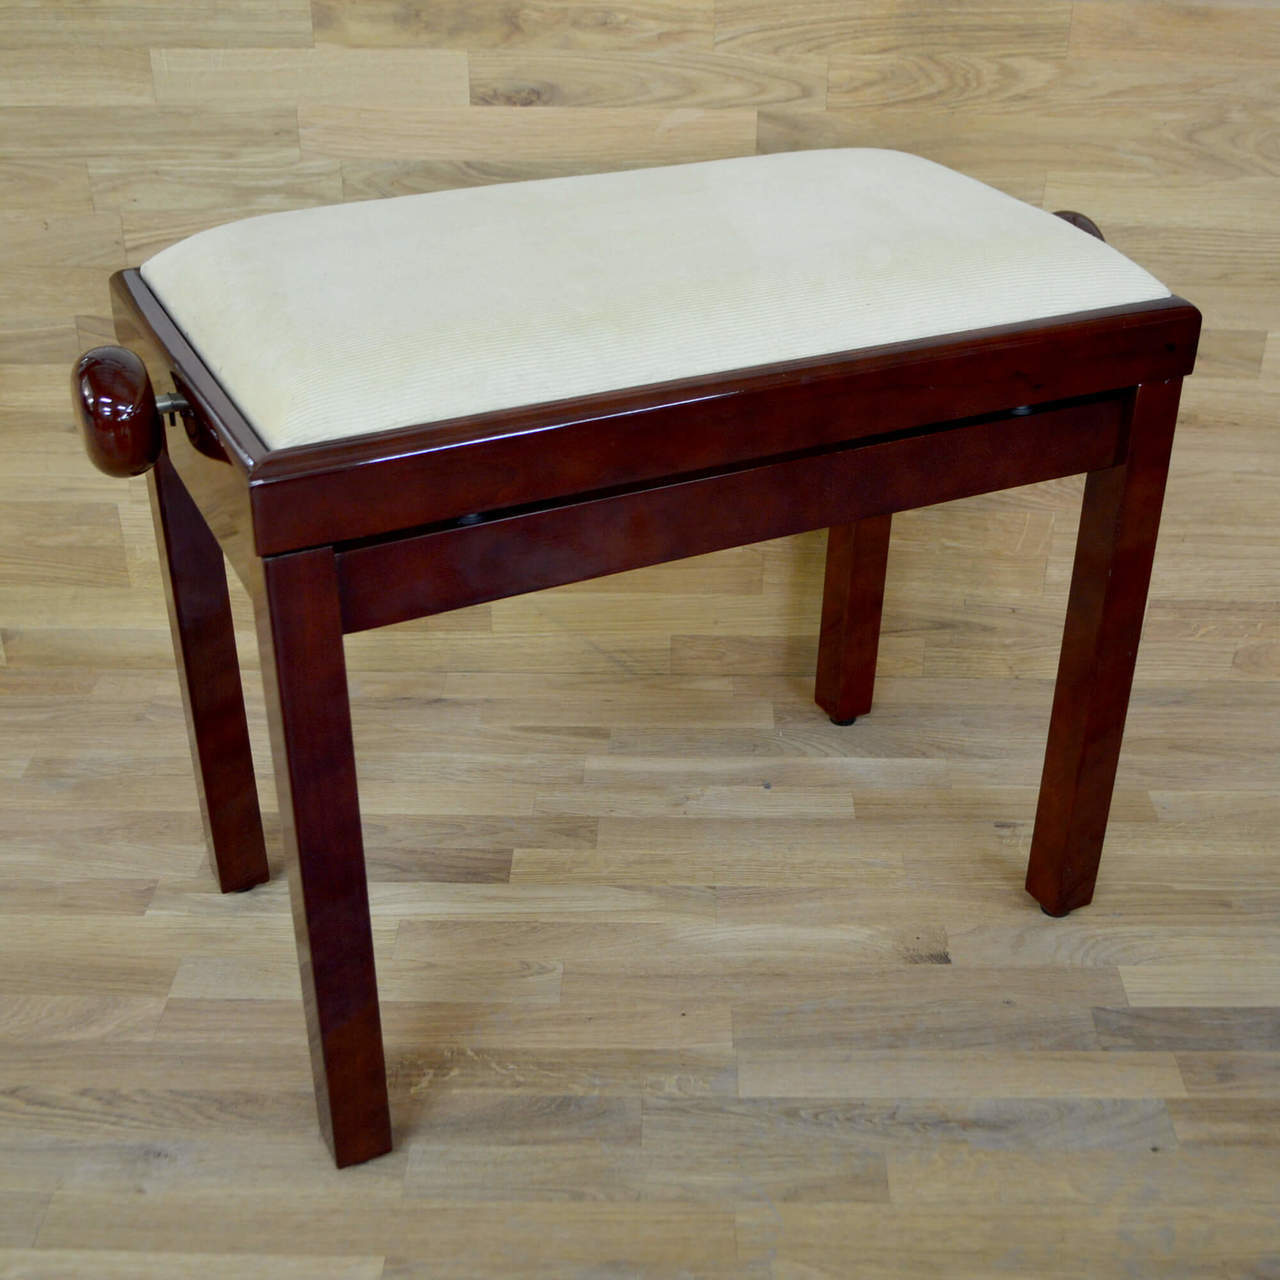 Strange Polished Mahogany Piano Bench Gmtry Best Dining Table And Chair Ideas Images Gmtryco